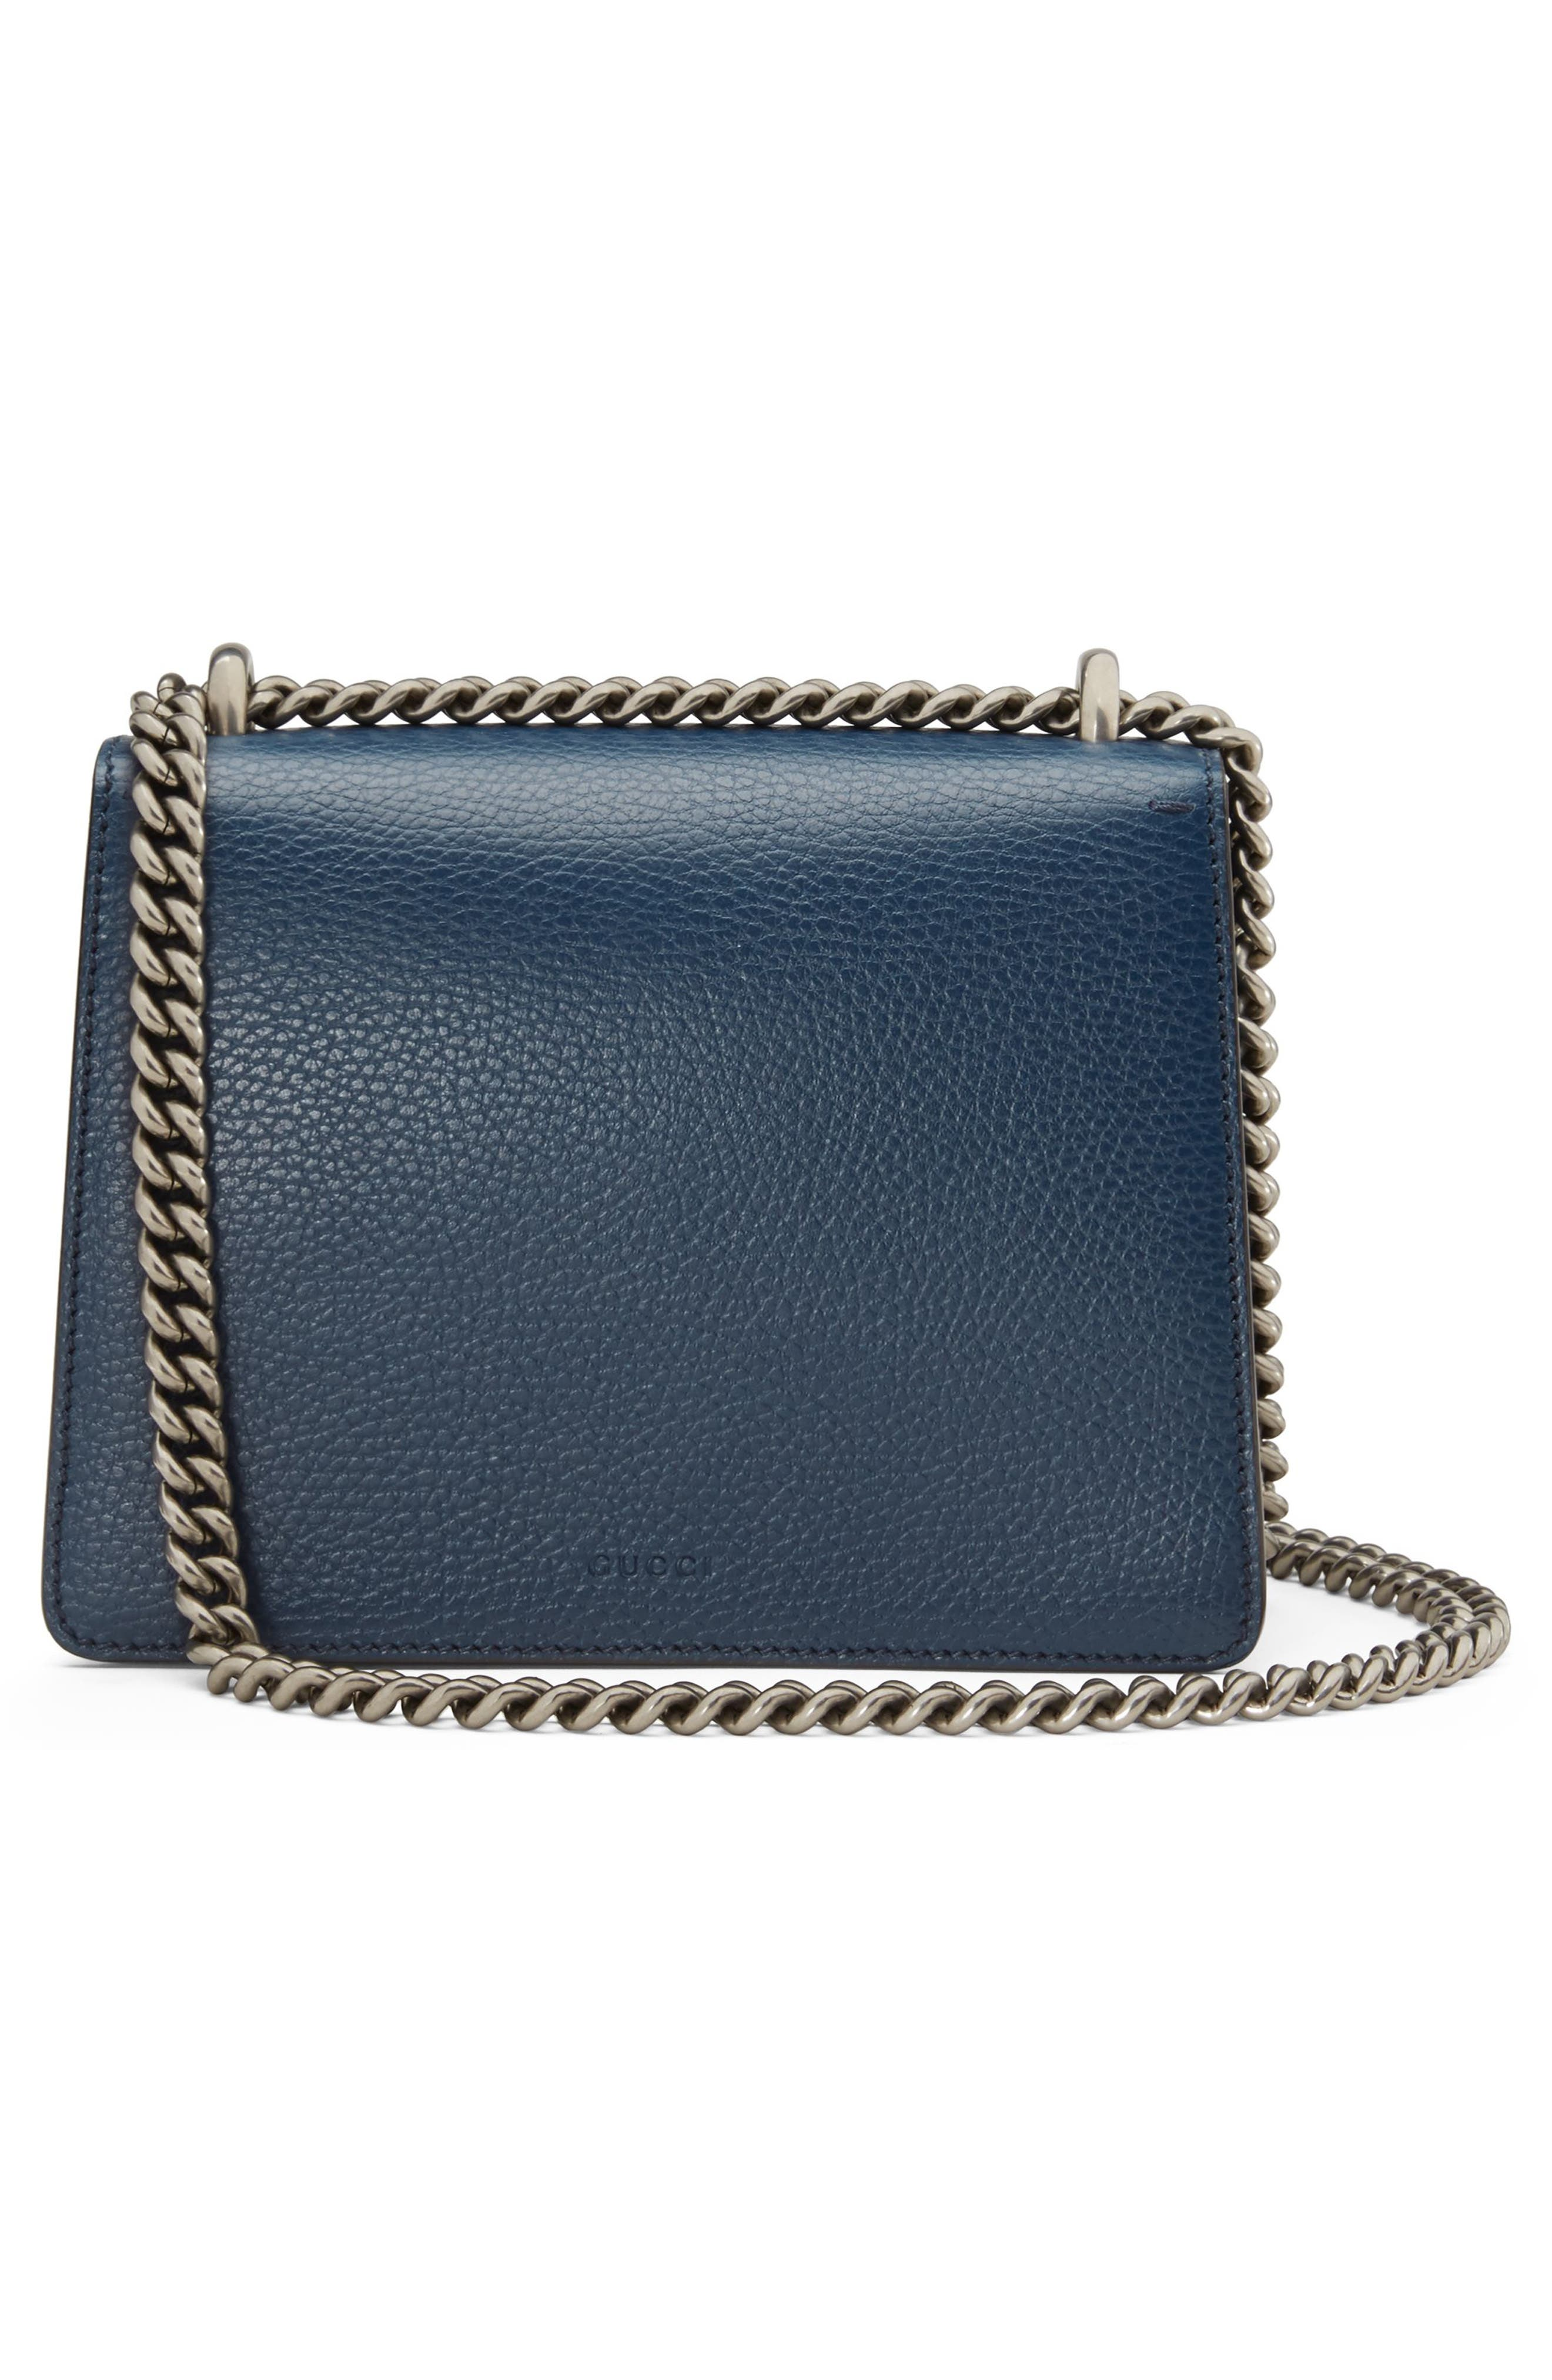 Mini Dionysus Leather Shoulder Bag,                             Alternate thumbnail 2, color,                             BLU AGATA/ MONTANA